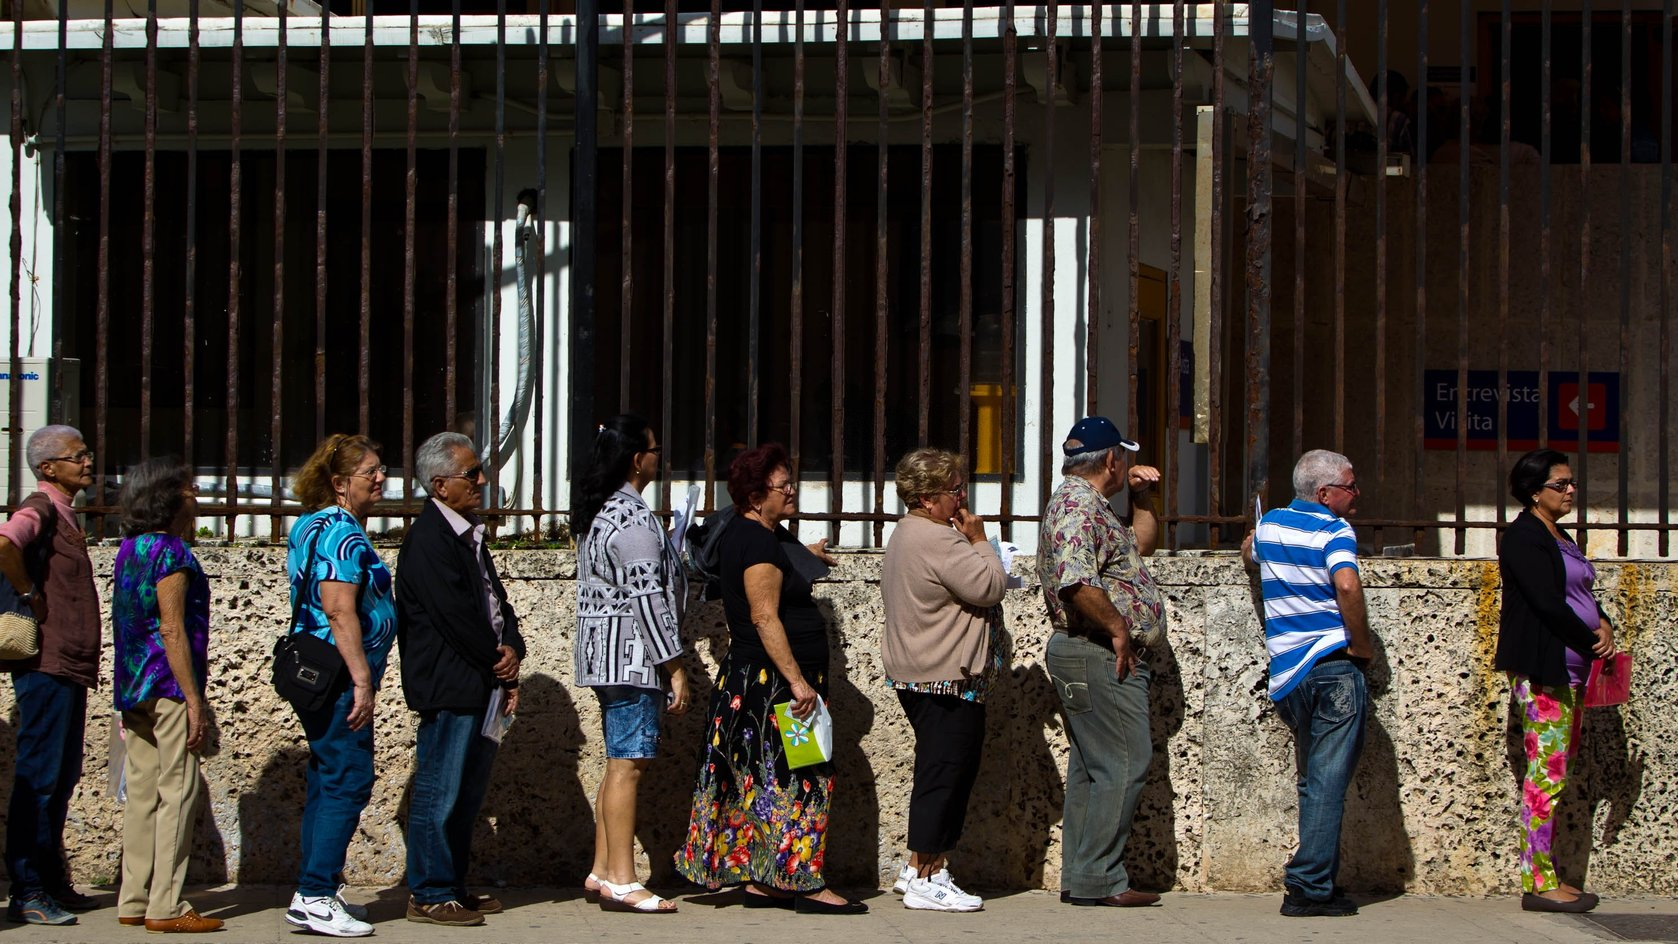 HAVANA, Dec. 17, 2014 (Xinhua) -- Cubans stand in queue to de